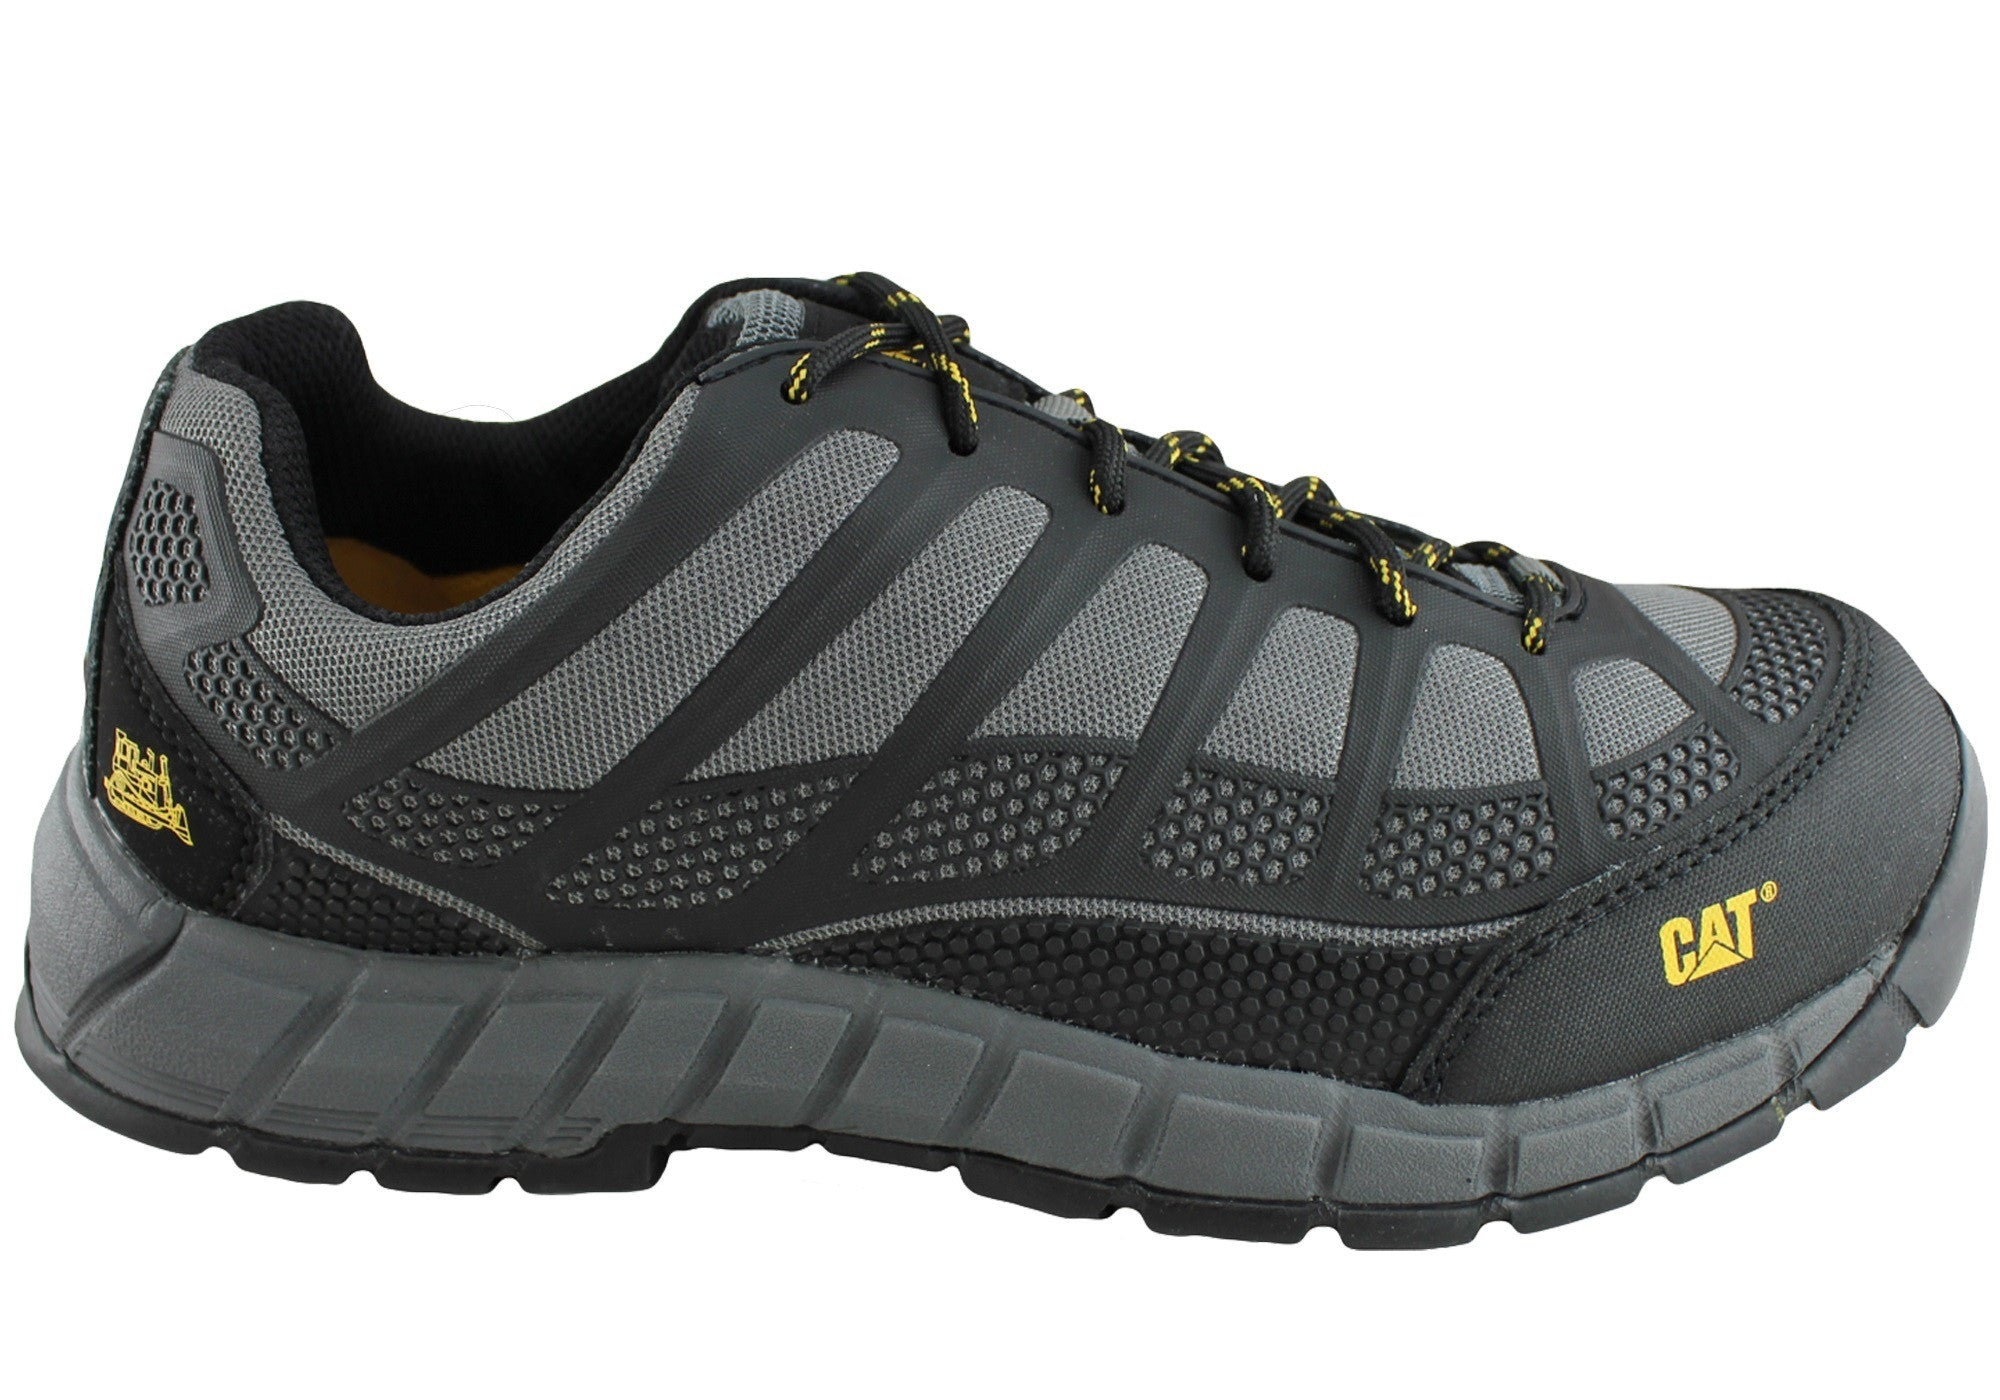 Caterpillar Streamline Composite Toe Mens Work/Safety Shoes | Brand House Direct